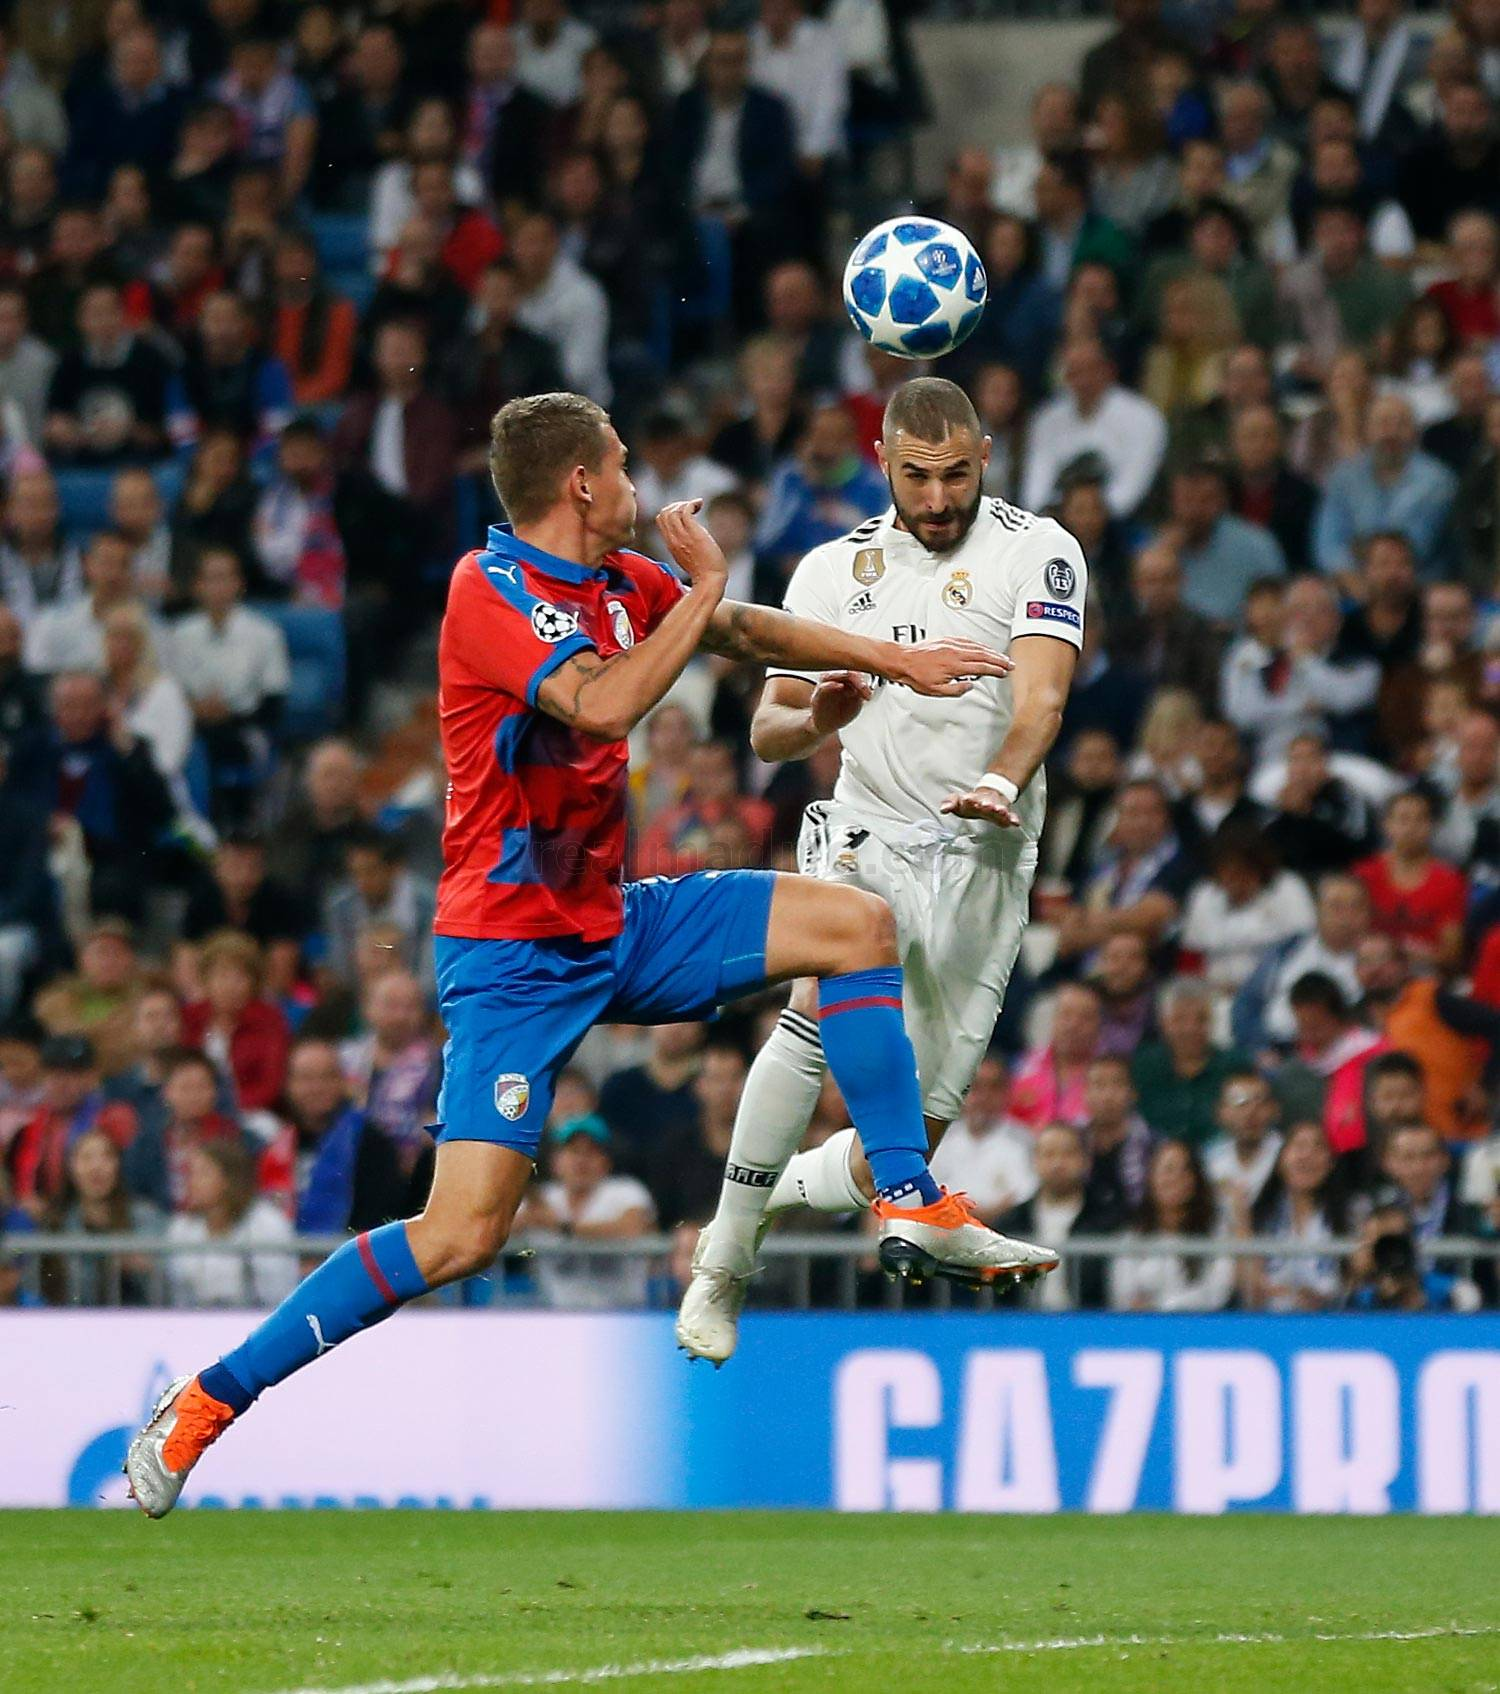 Real Madrid - Real Madrid - Viktoria Plzen - 23-10-2018